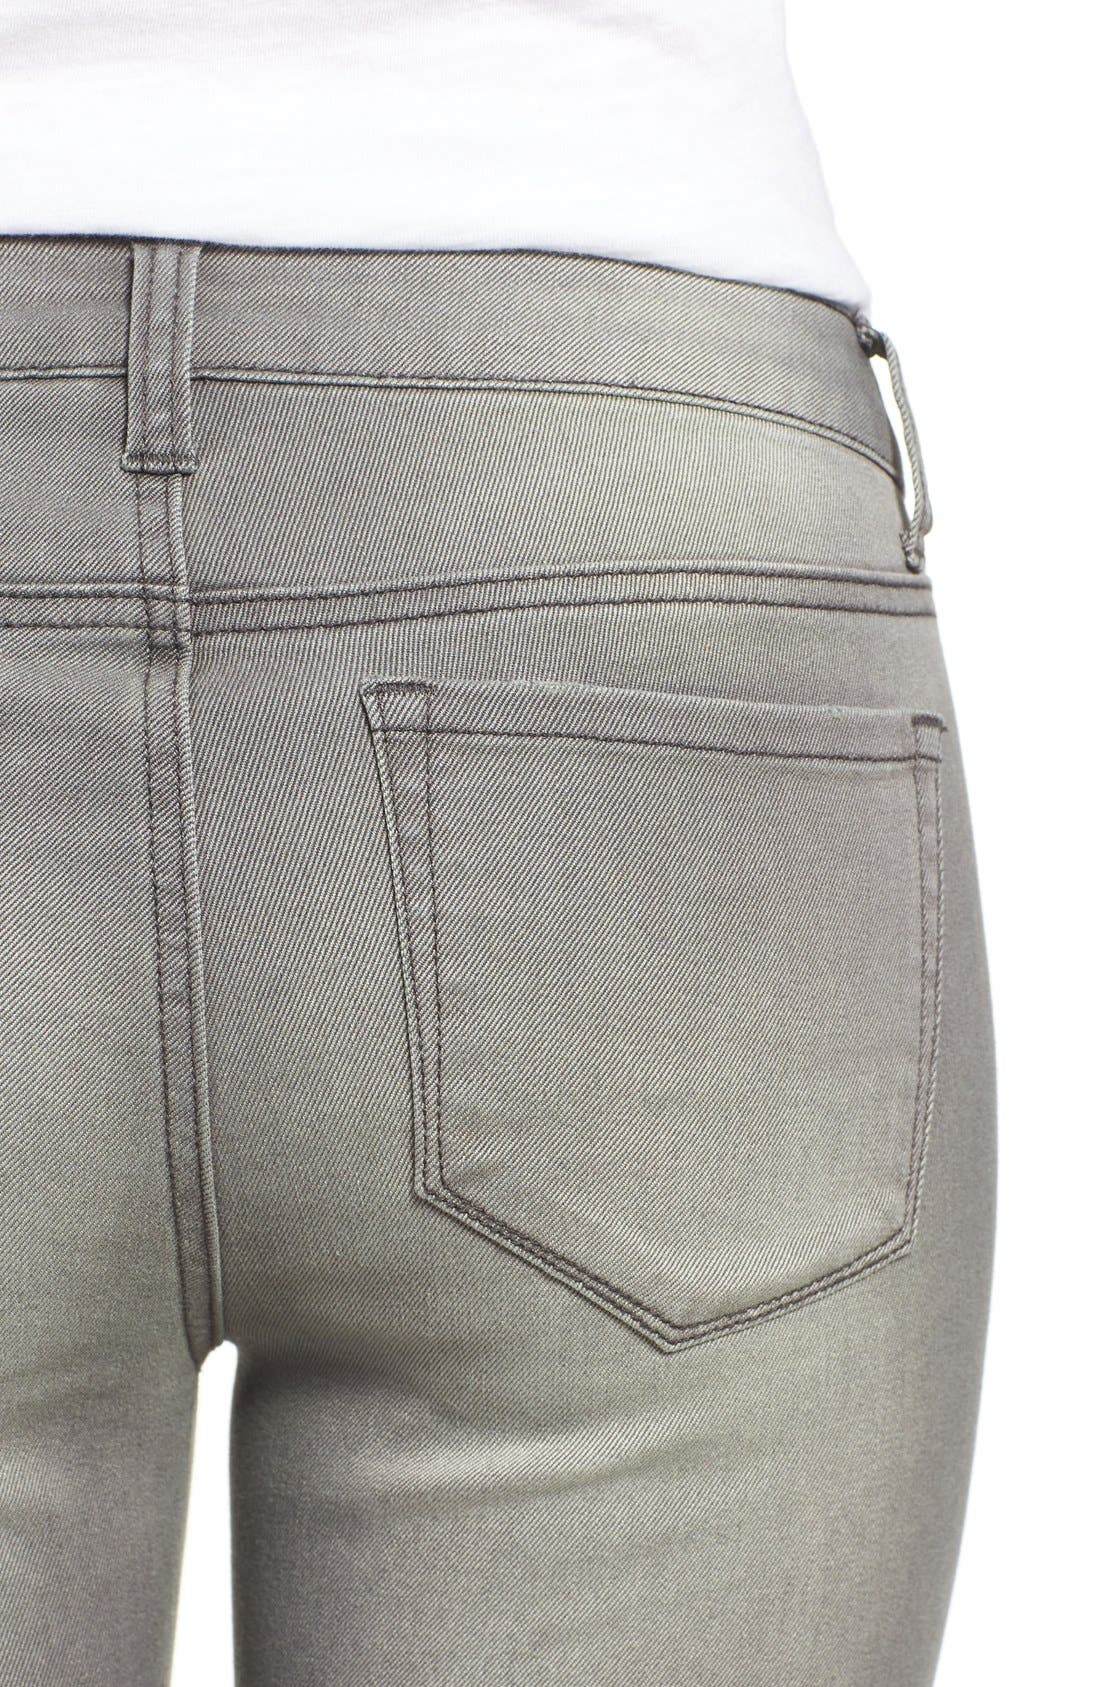 Alternate Image 4  - Dex Distressed Biker Skinny Jeans (Faded Grey)